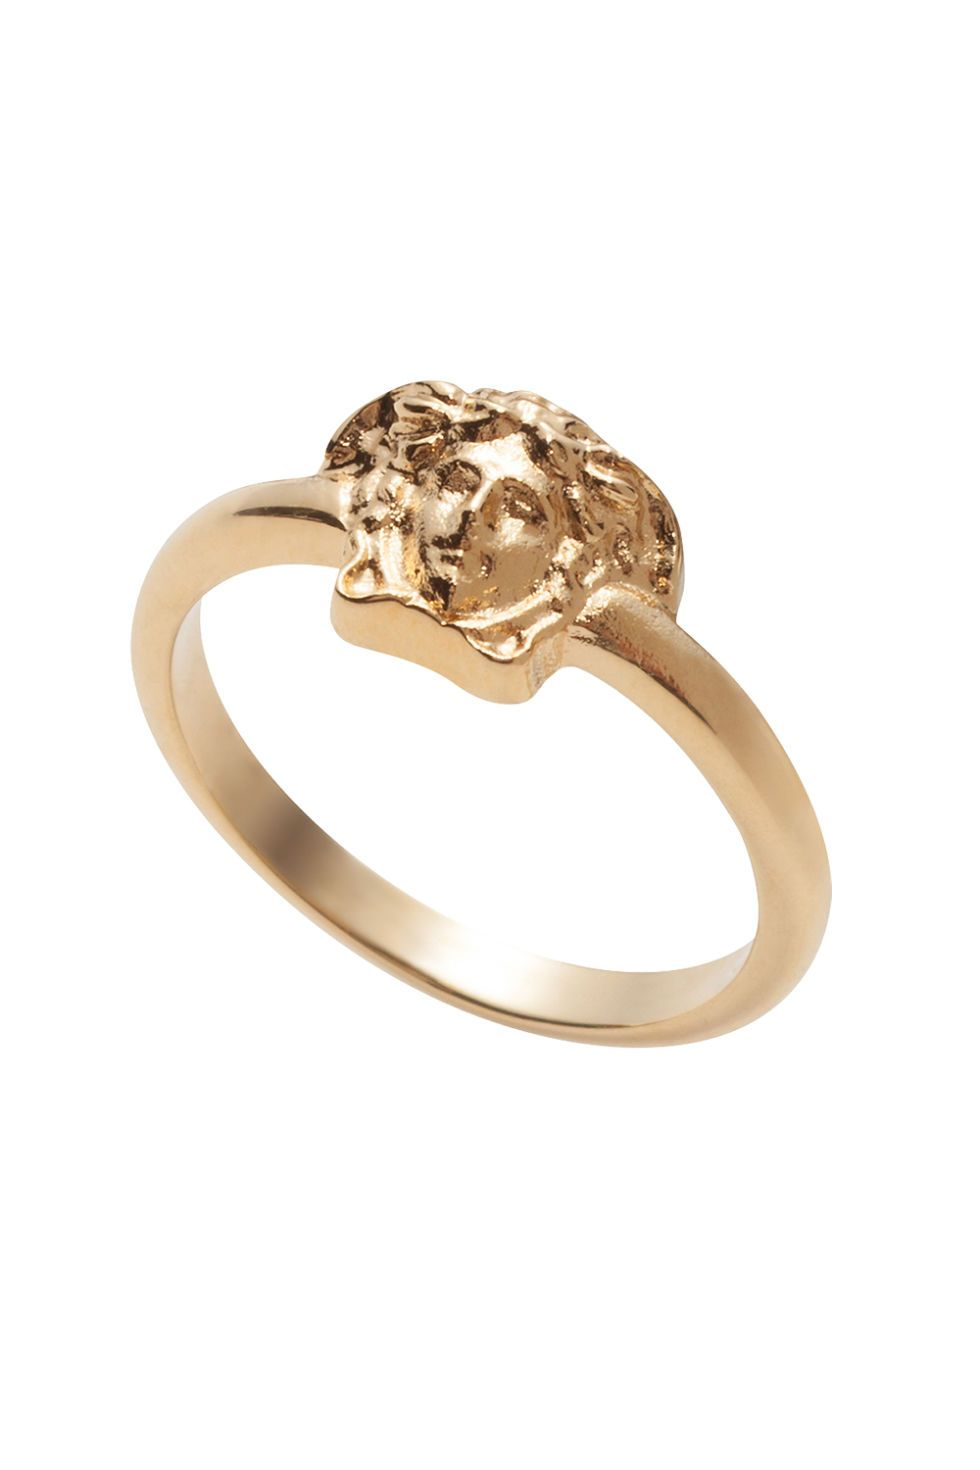 Holiday Gifts With Price Tags Versace Ring And Gift